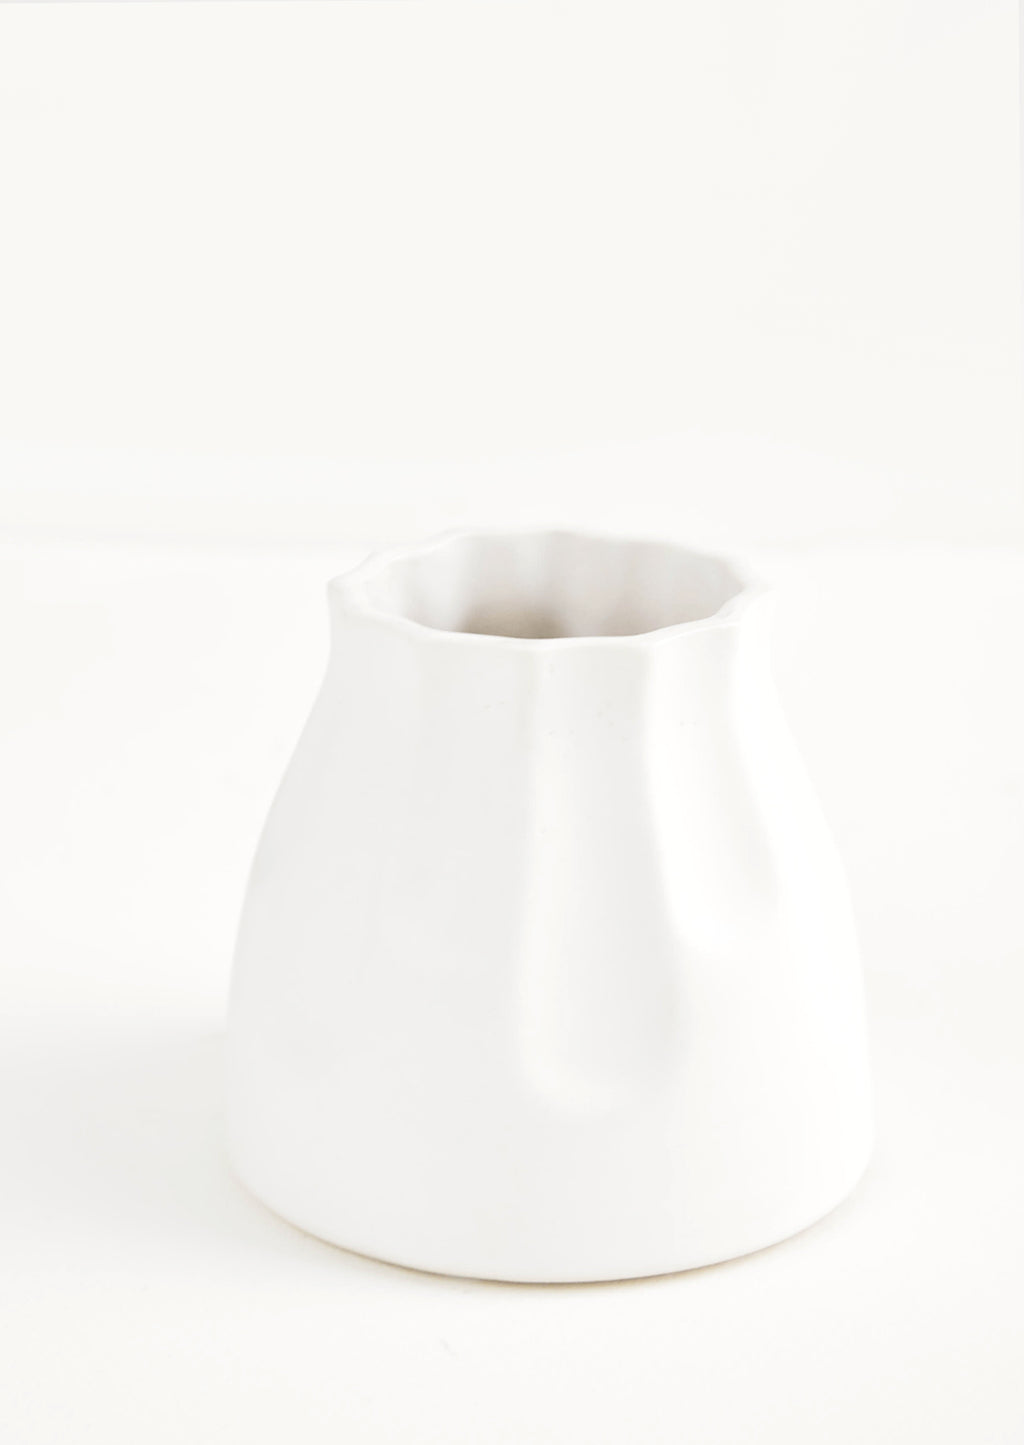 2: Small and round mini ceramic vase in white with fluting detailing along top